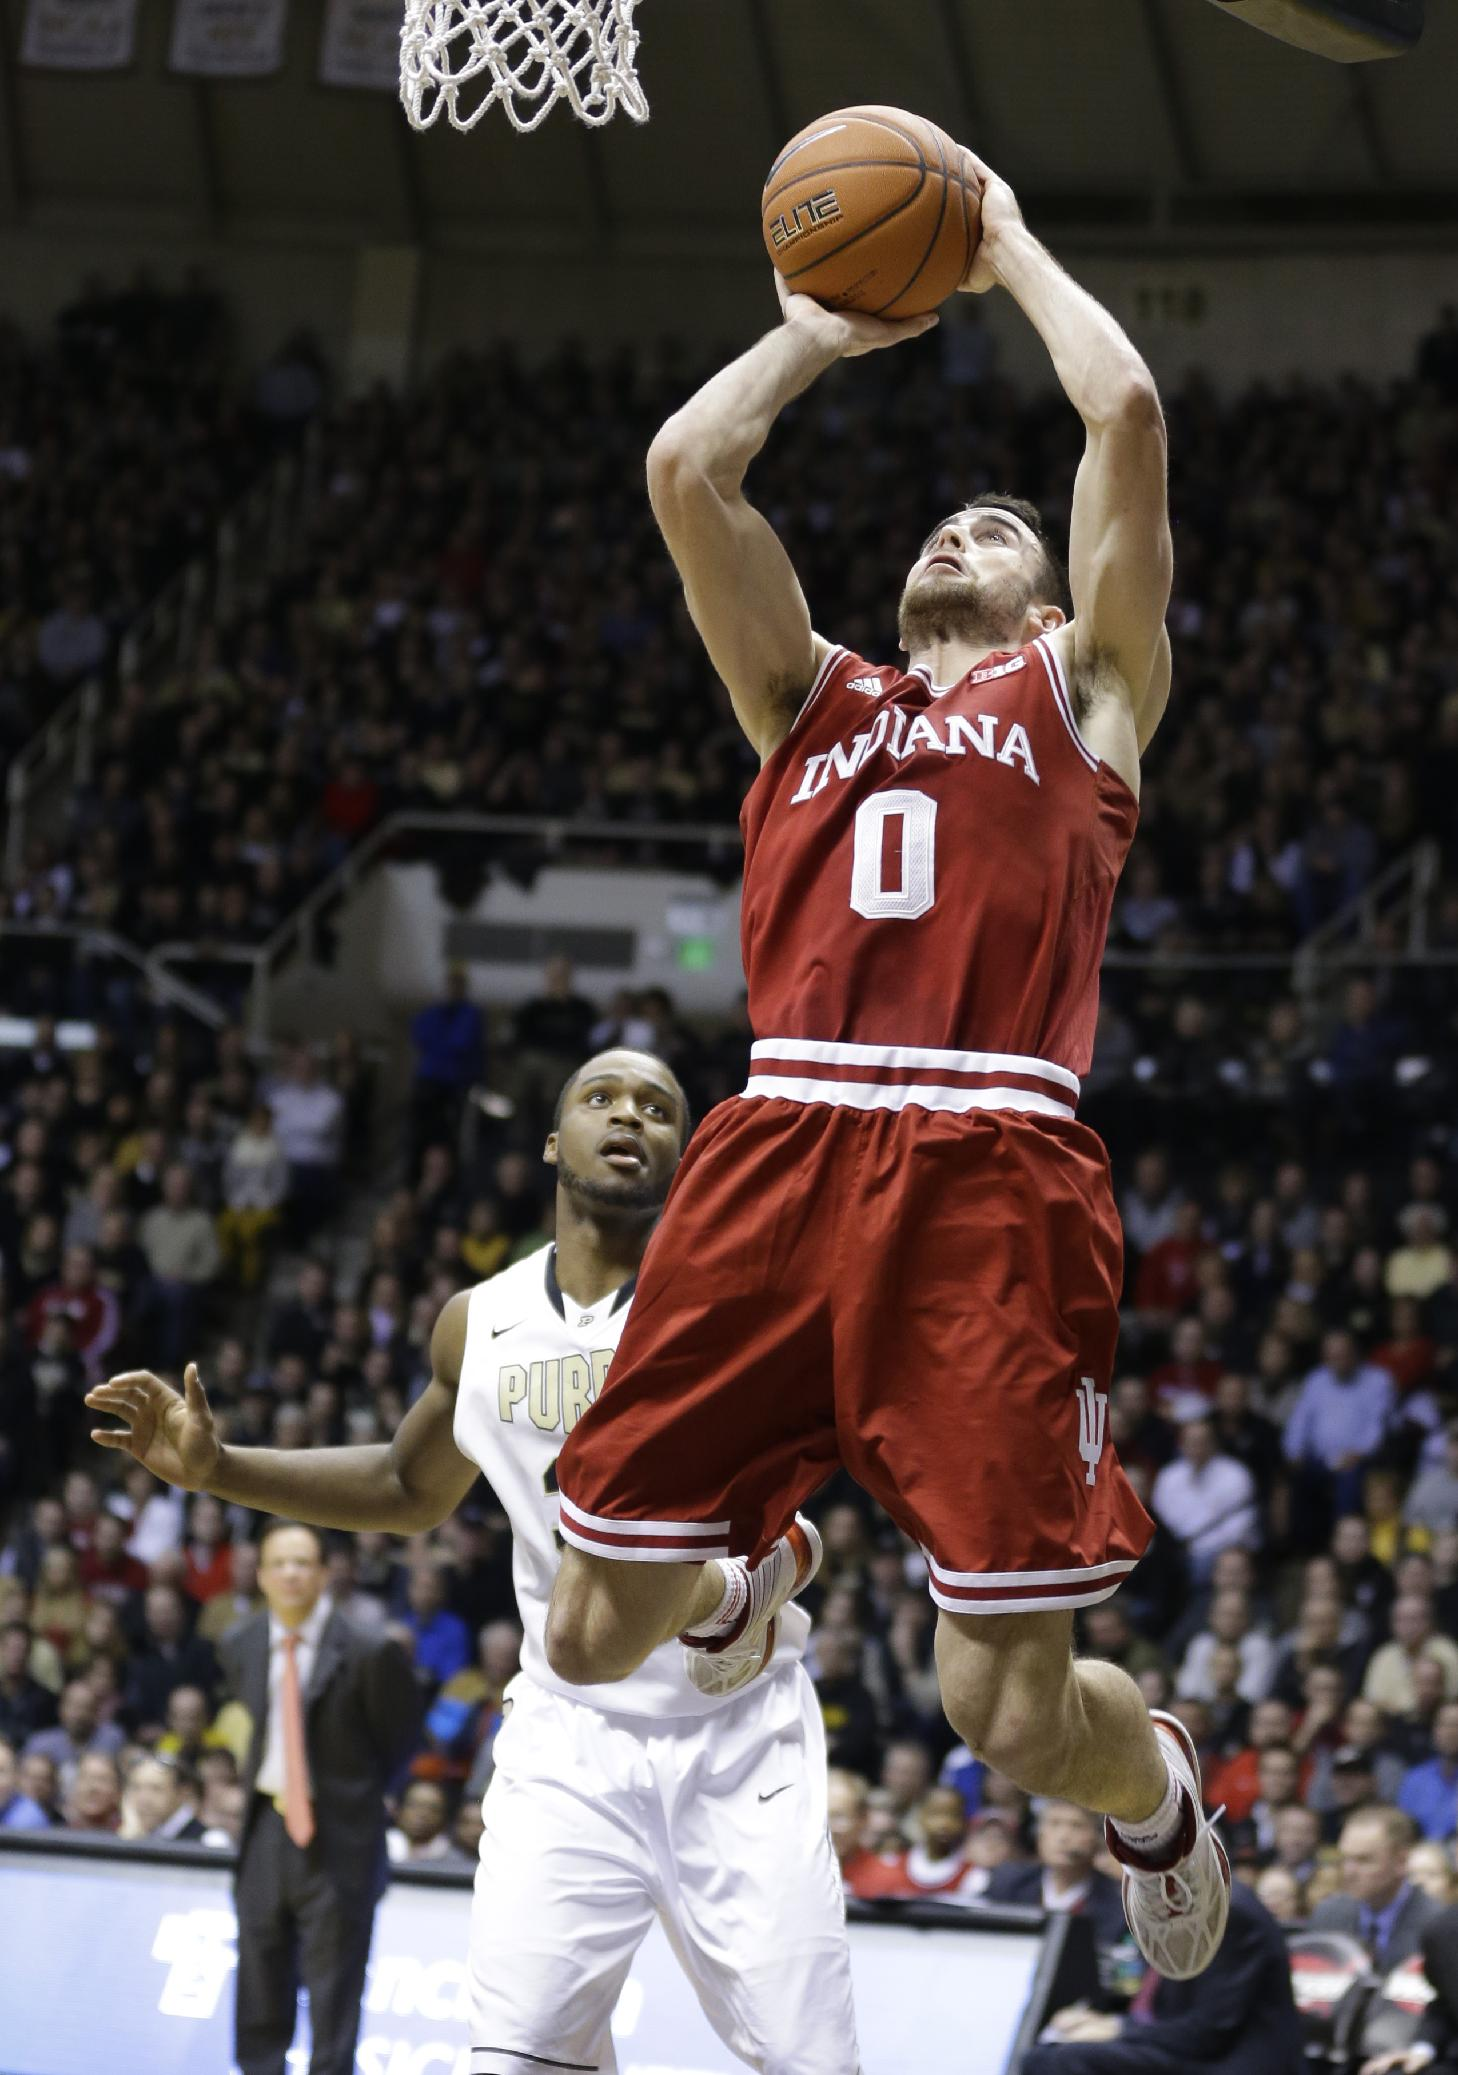 Indiana forward Will Sheehey (0) shoots in front of Purdue guard Rapheal Davis in the second half of an NCAA college basketball game in West Lafayette, Ind., Saturday, Feb. 15, 2014. Purdue defeated Indiana 82-64